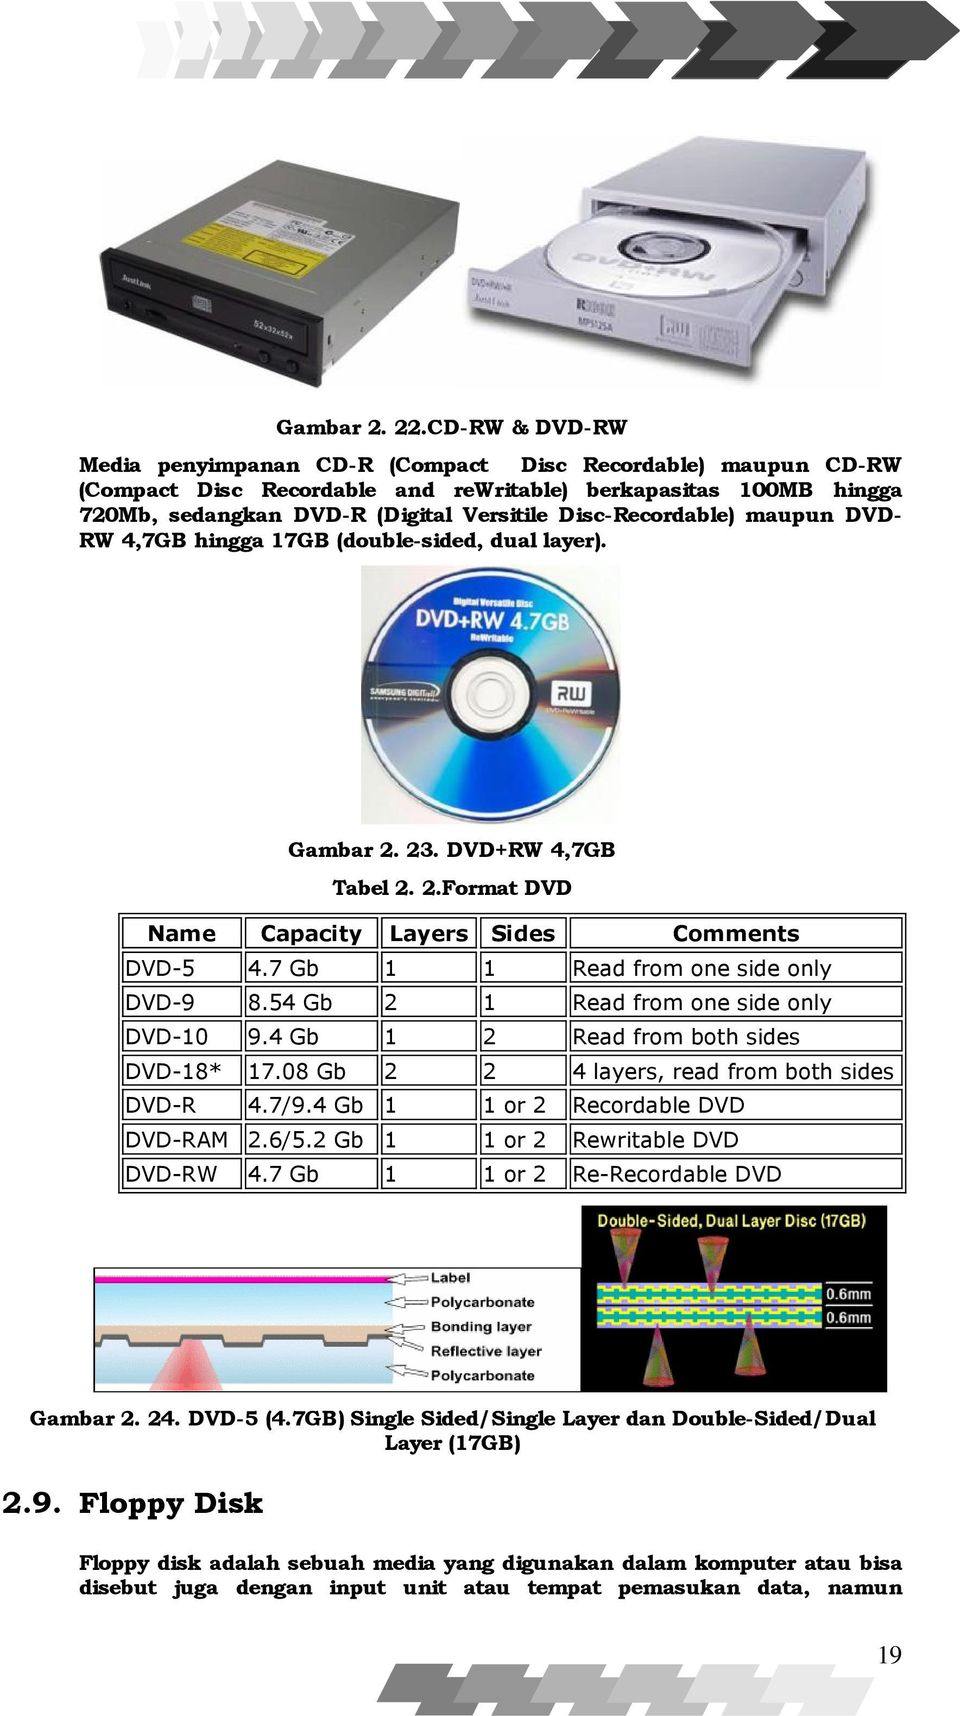 Disc-Recordable) maupun DVDRW 4,7GB hingga 17GB (double-sided, dual layer). Gambar 2. 23. DVD+RW 4,7GB Tabel 2. 2.Format DVD Name Capacity Layers Sides Comments DVD-5 4.